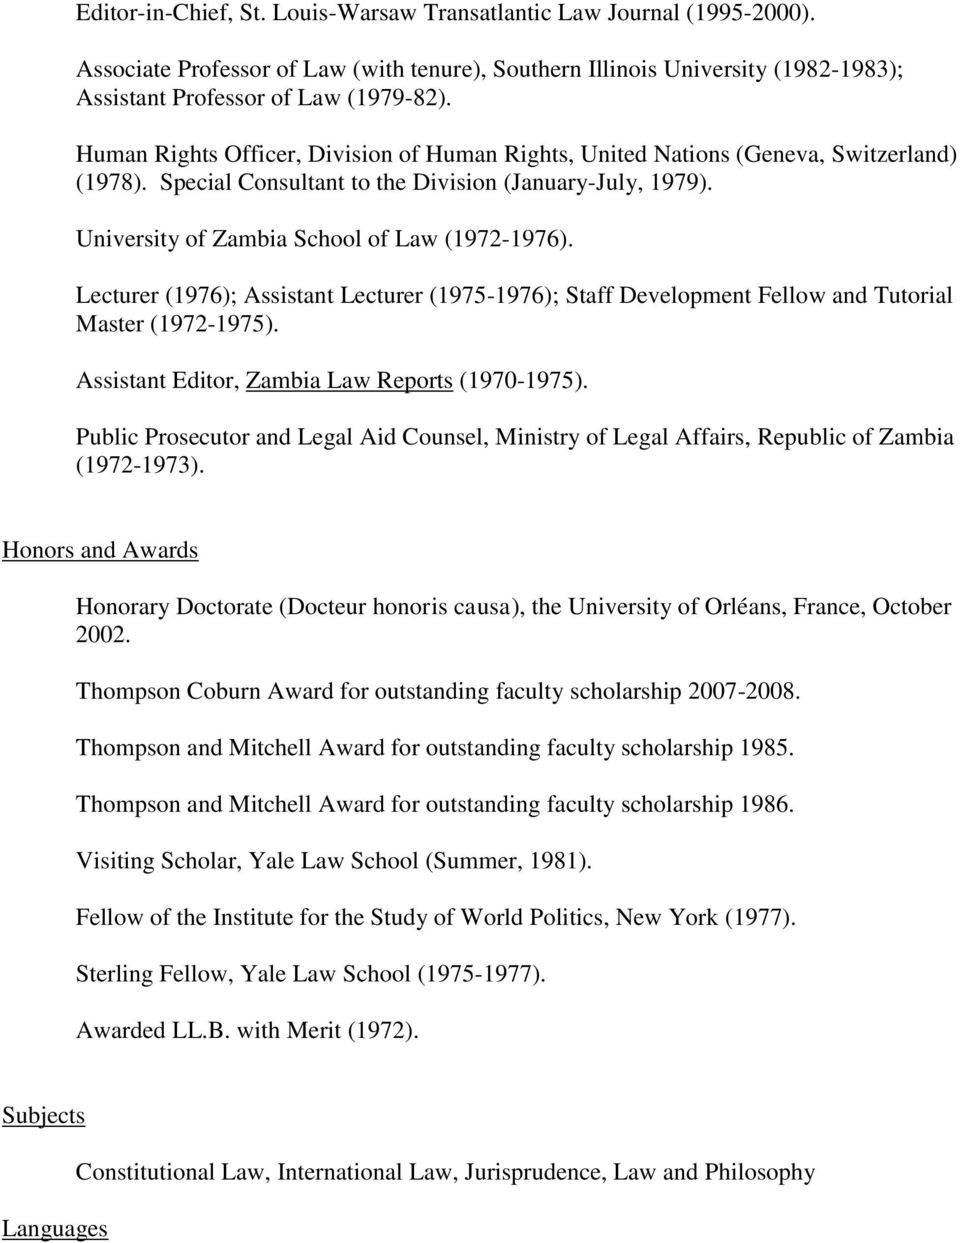 Lecturer (1976); Assistant Lecturer (1975-1976); Staff Development Fellow and Tutorial Master (1972-1975). Assistant Editor, Zambia Law Reports (1970-1975).